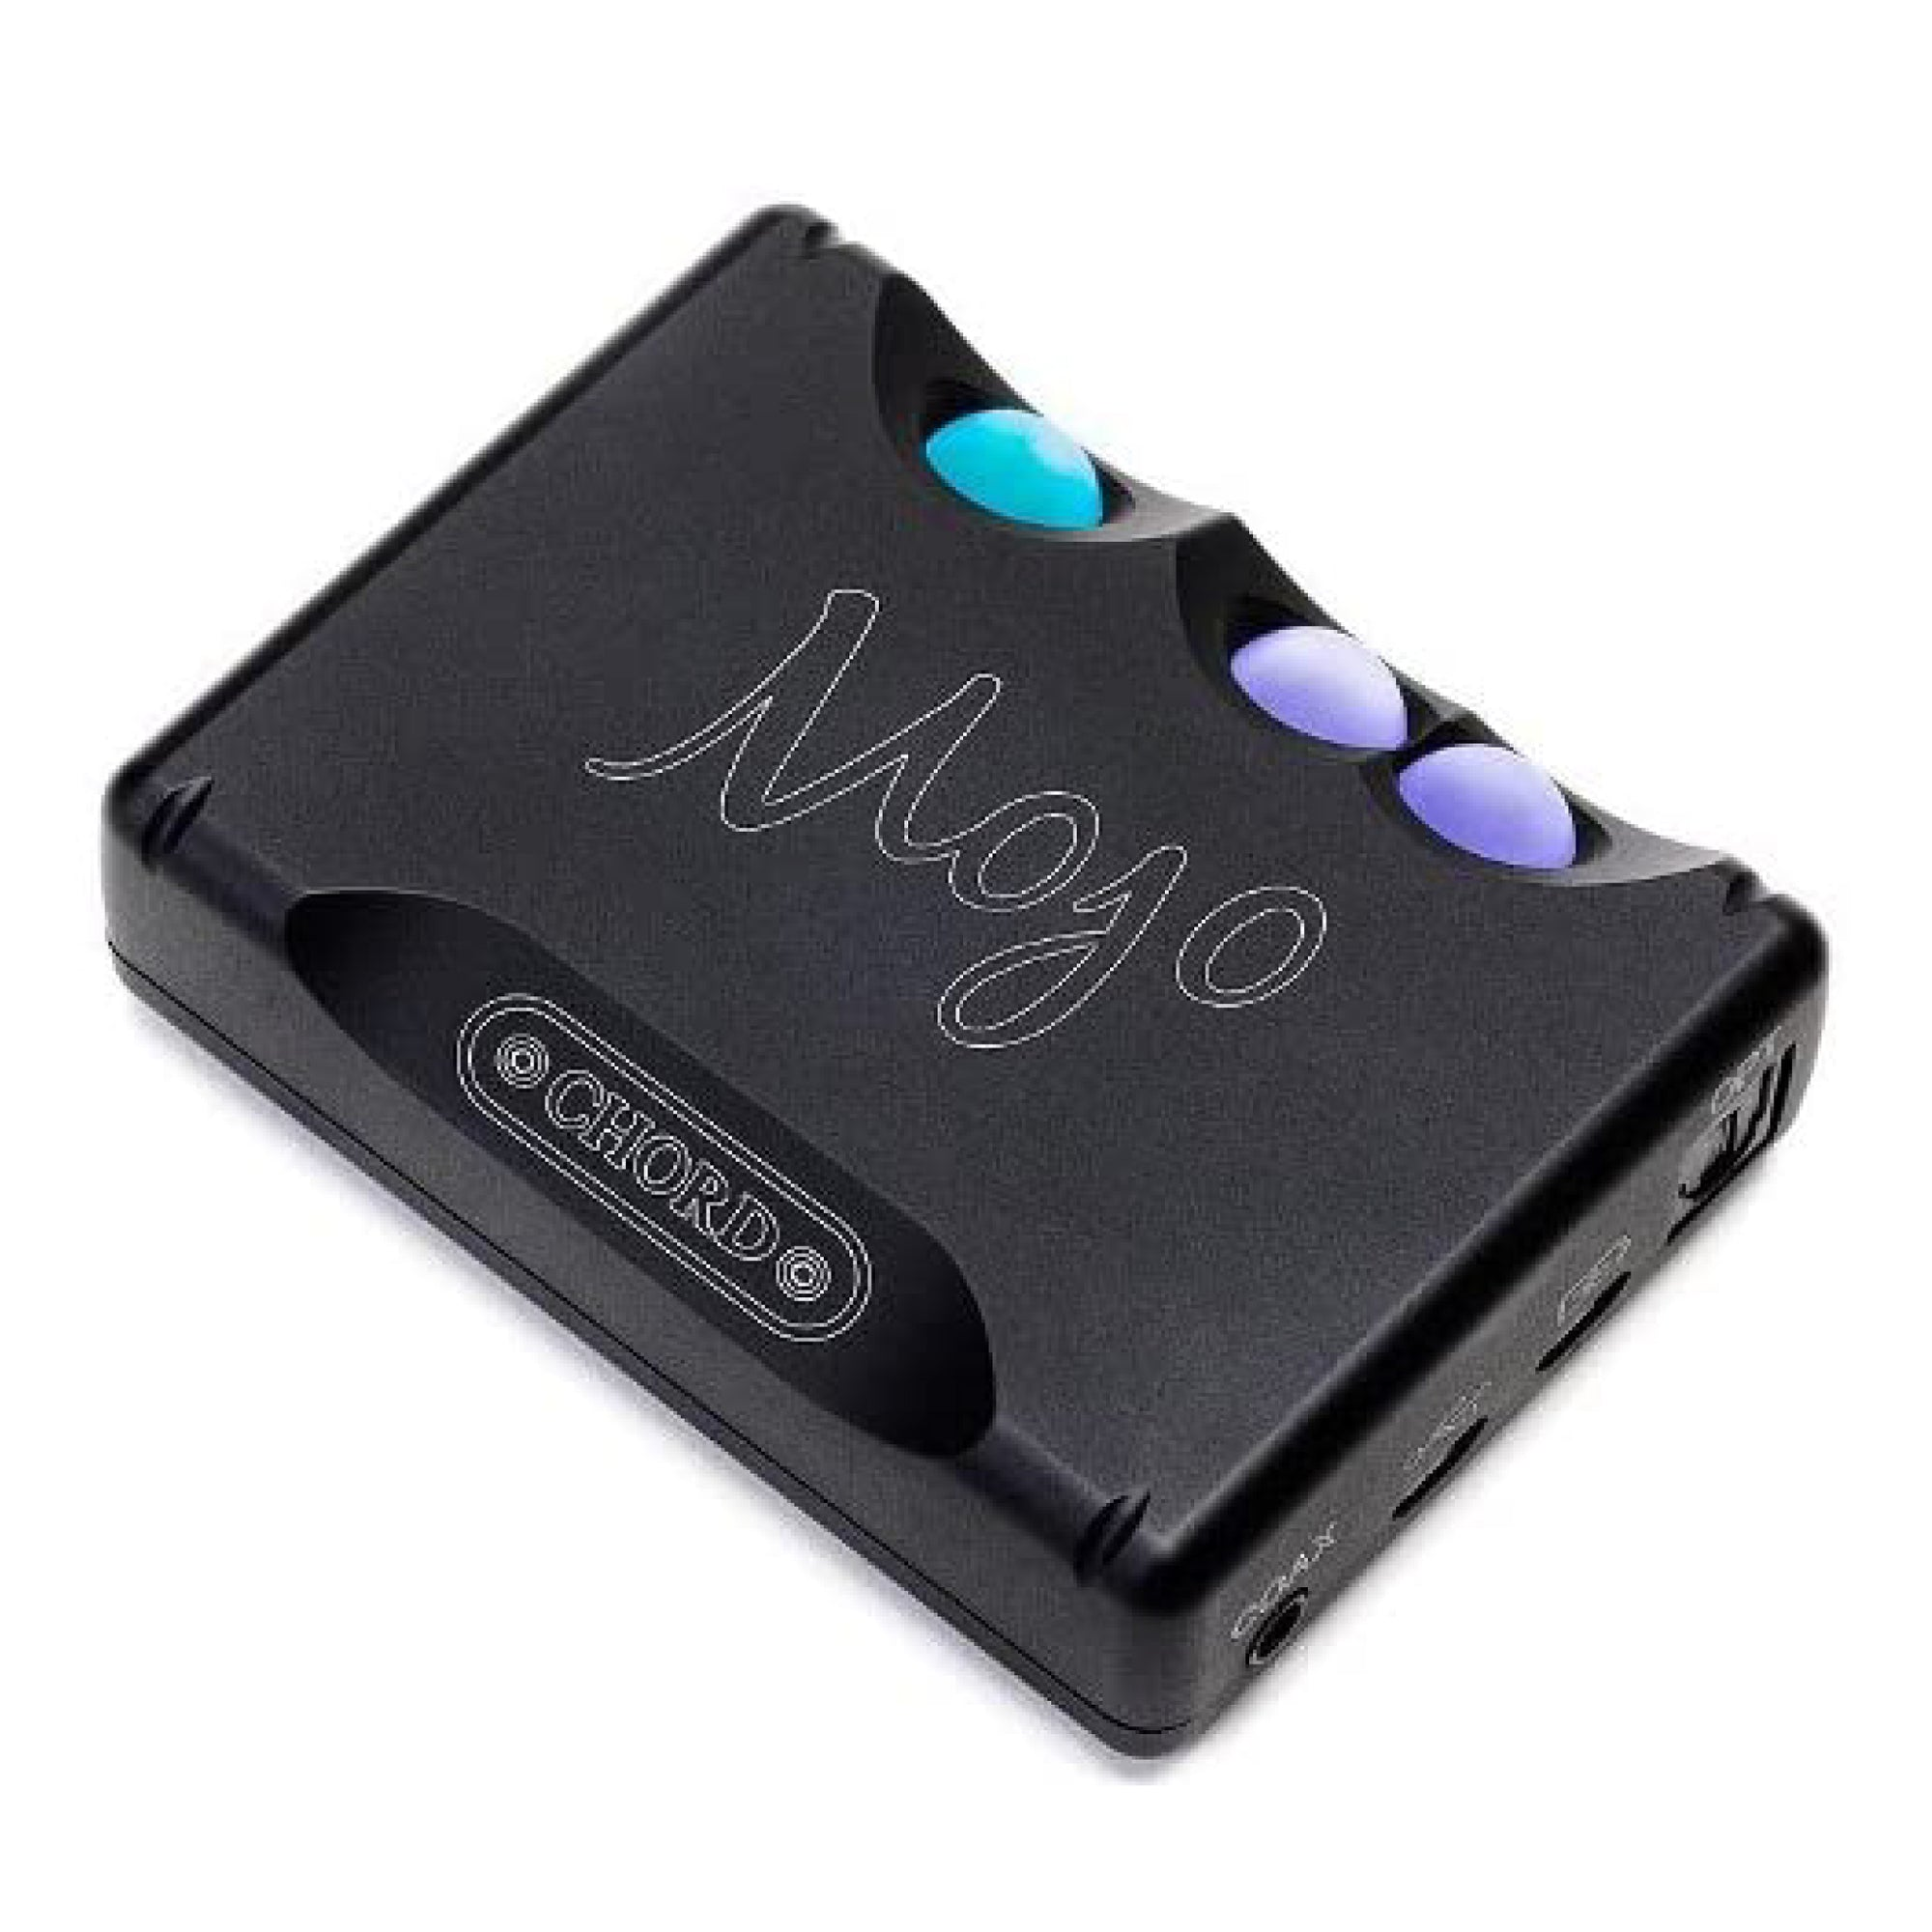 Chord Mojo Black DAC/Headphone Amplifier - Gears For Ears